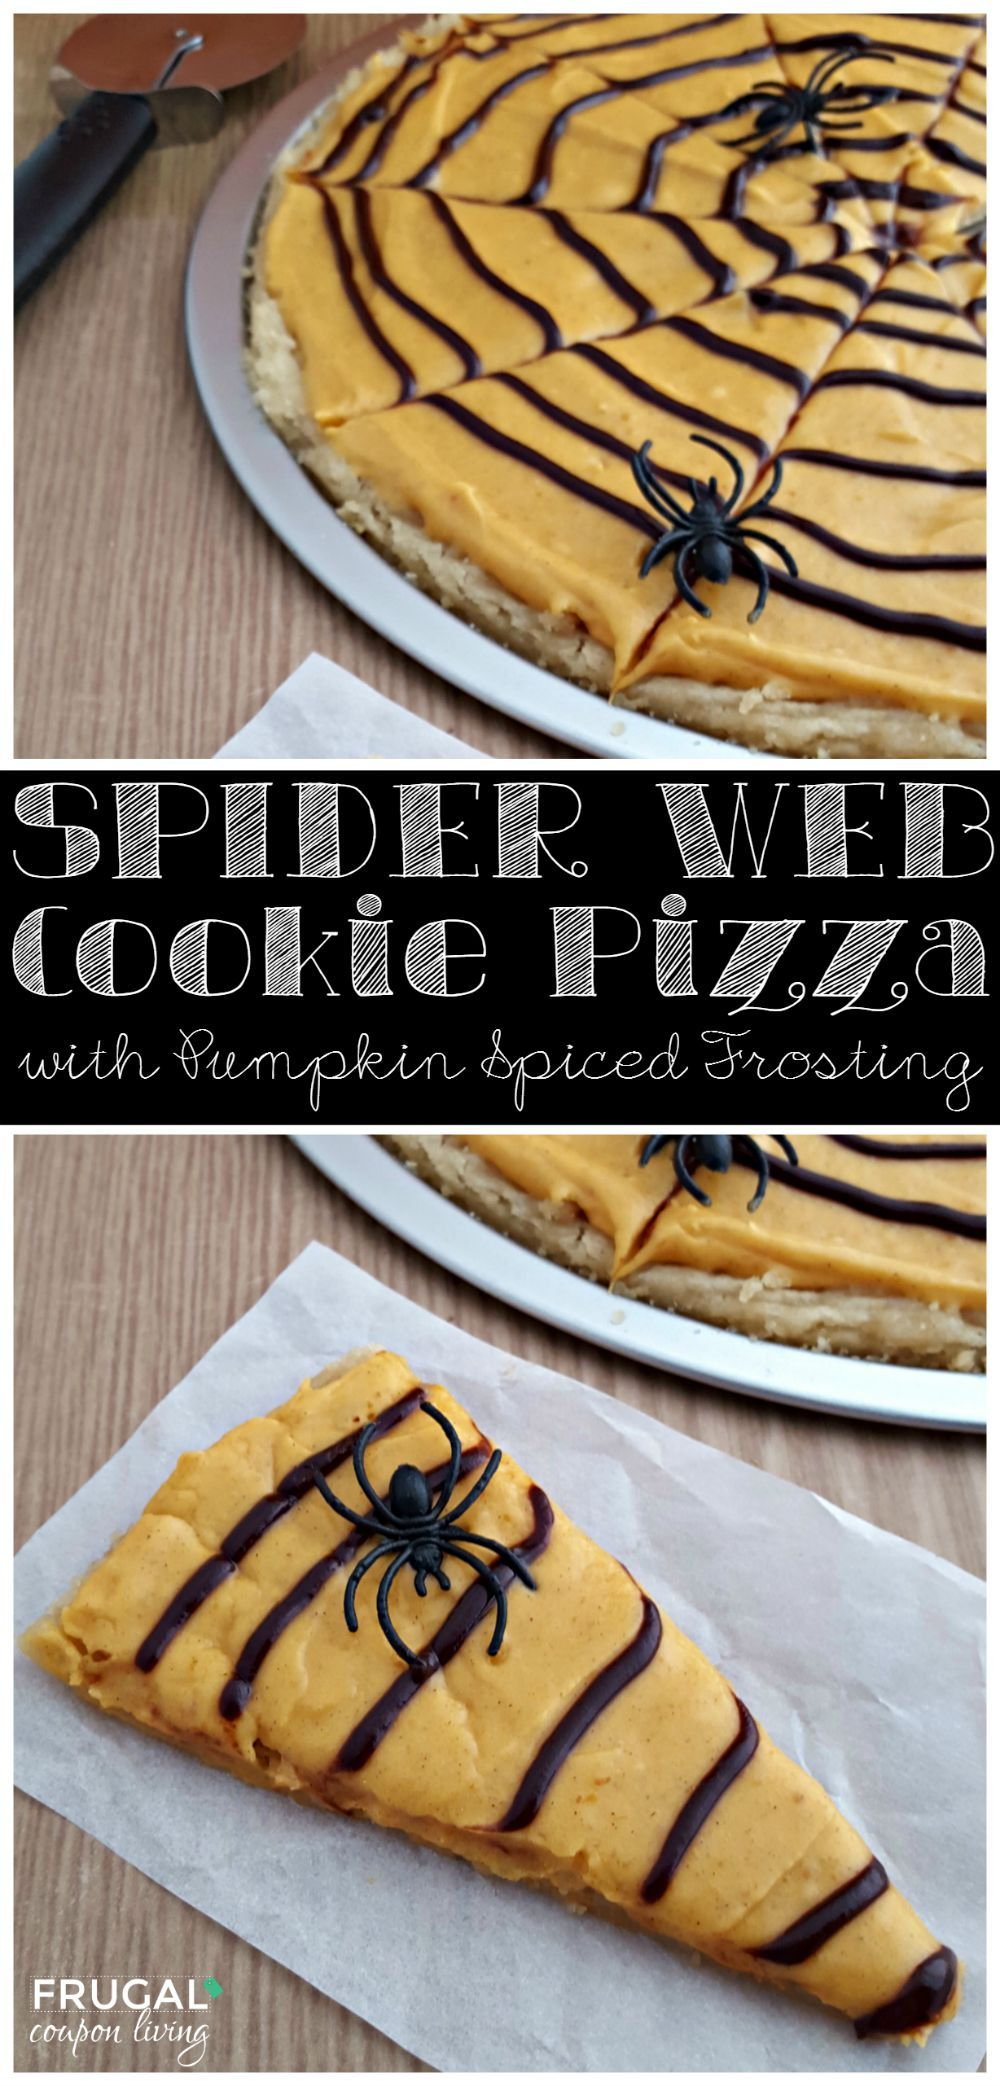 Pumpkin Spiced Spider Web Cookie Pizza on Frugal Coupon LIving. This is great for a school party idea, add spider rings to the web to give it a spooky touch!